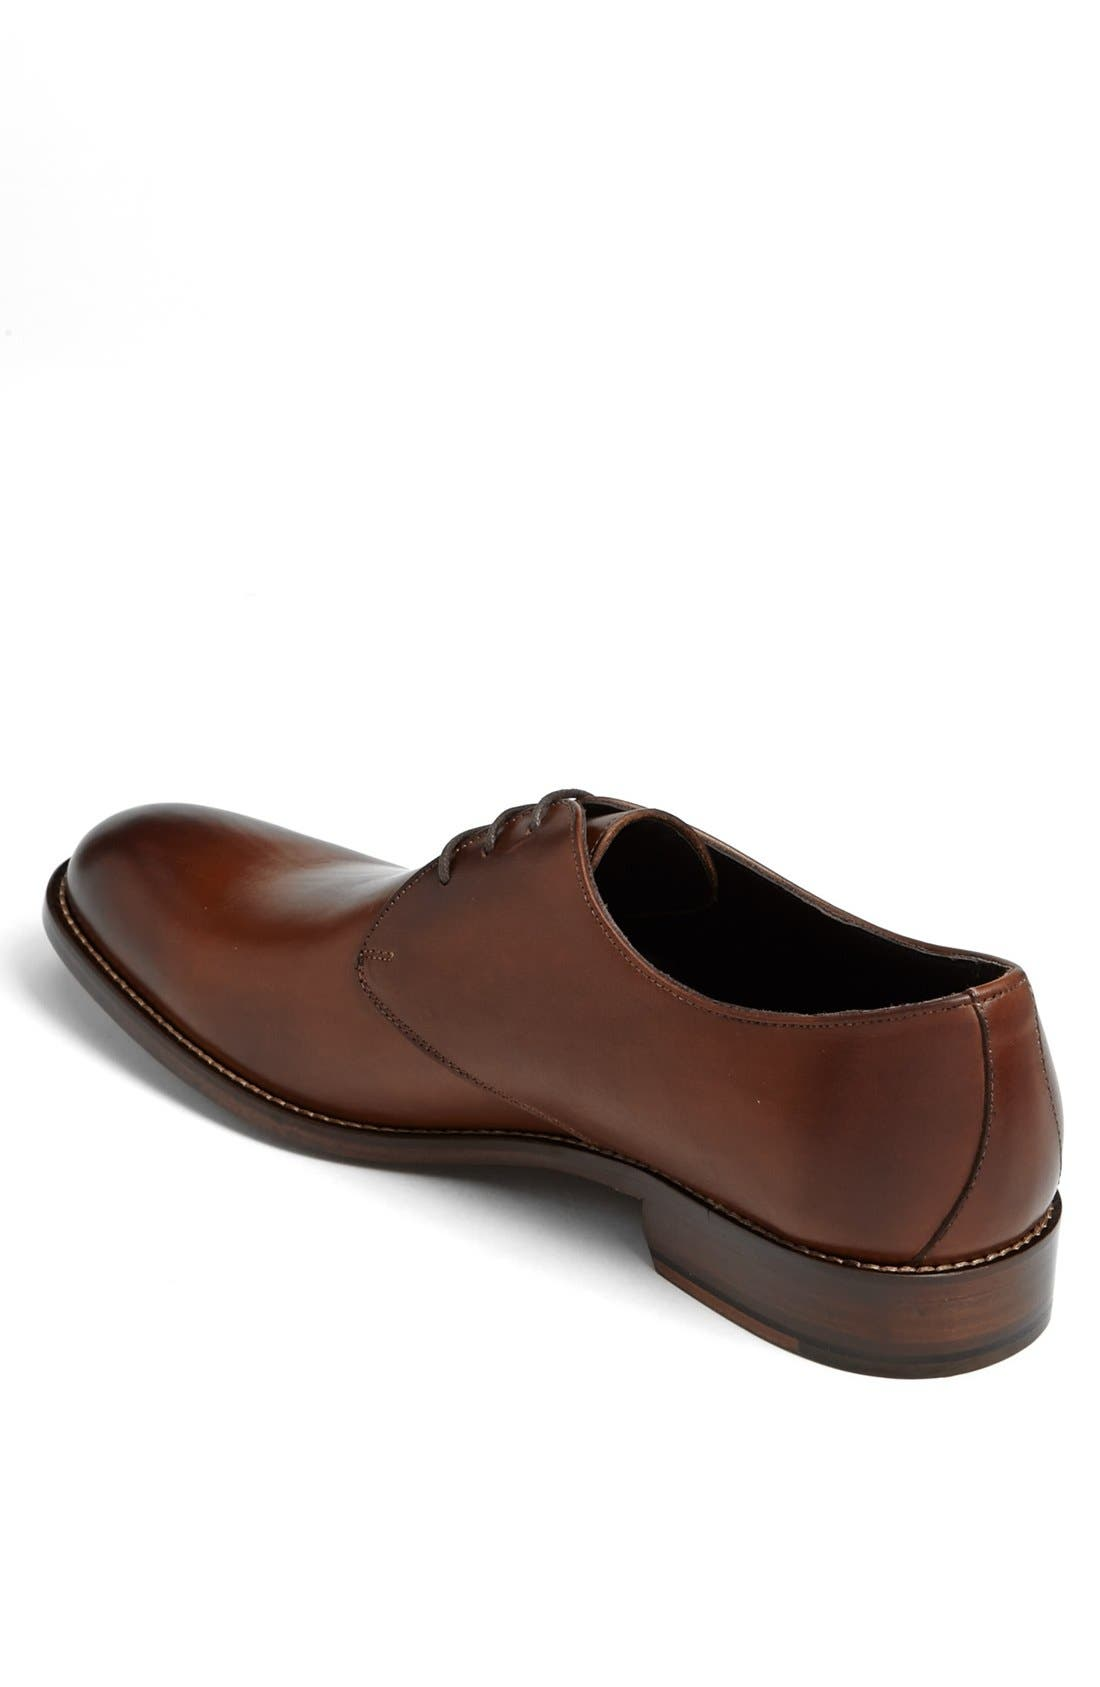 Alternate Image 2  - To Boot New York 'Winston' Oxford